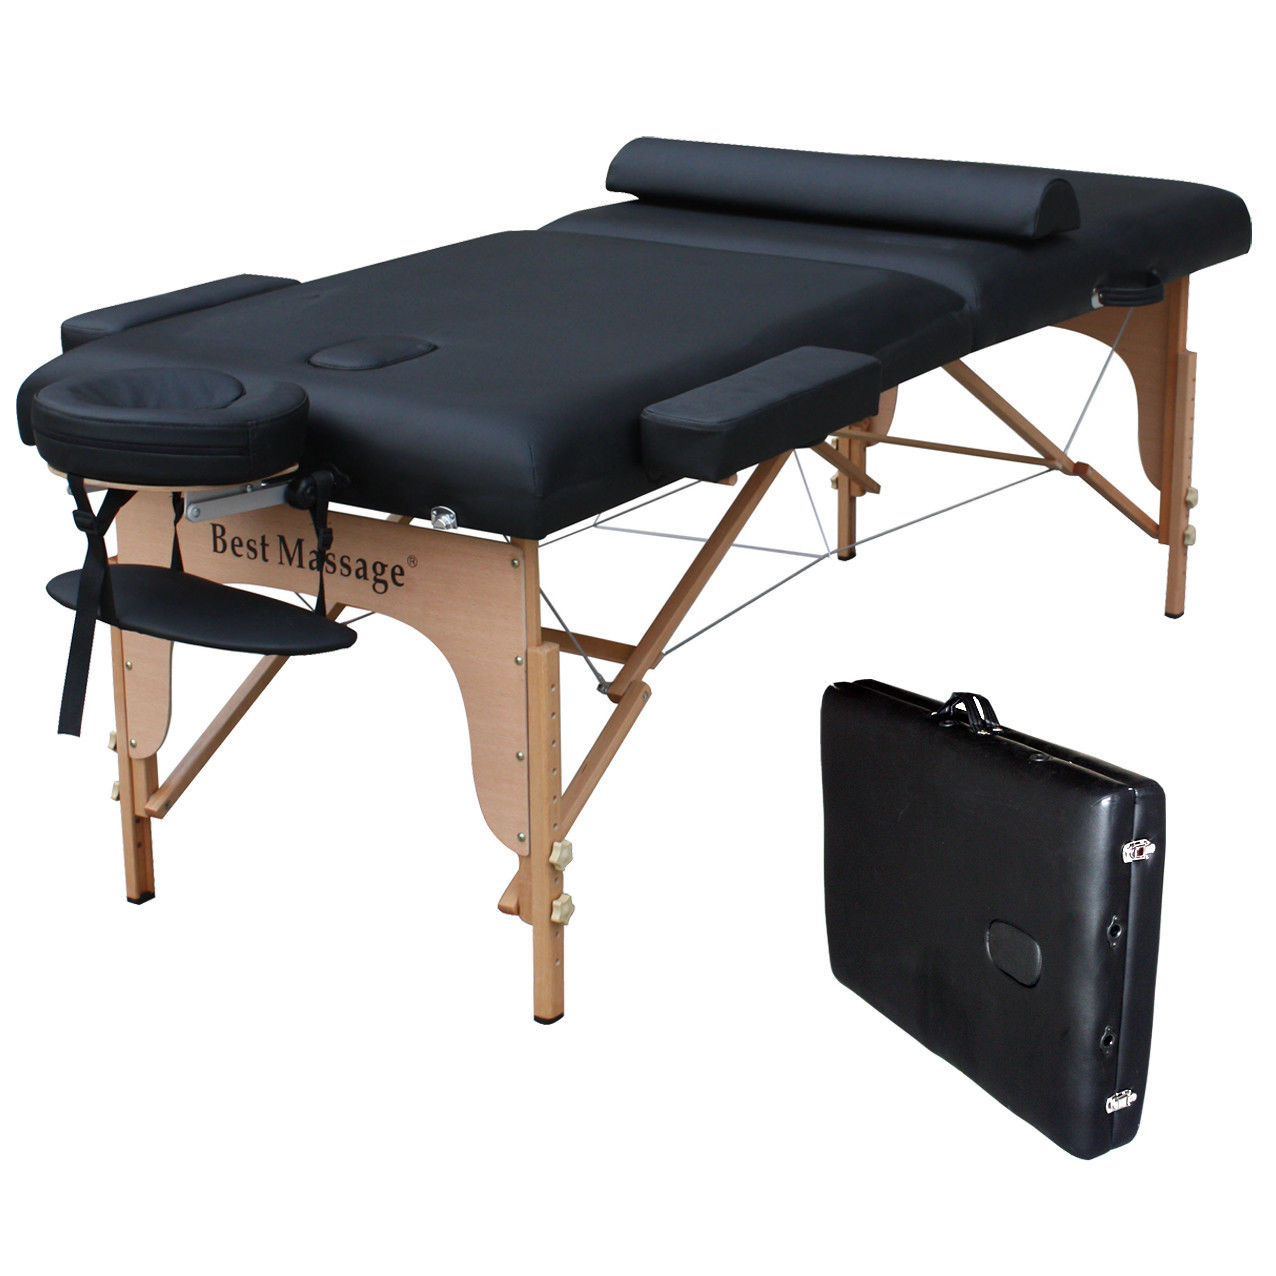 Full sized massage table w half round bolster for Html table padding